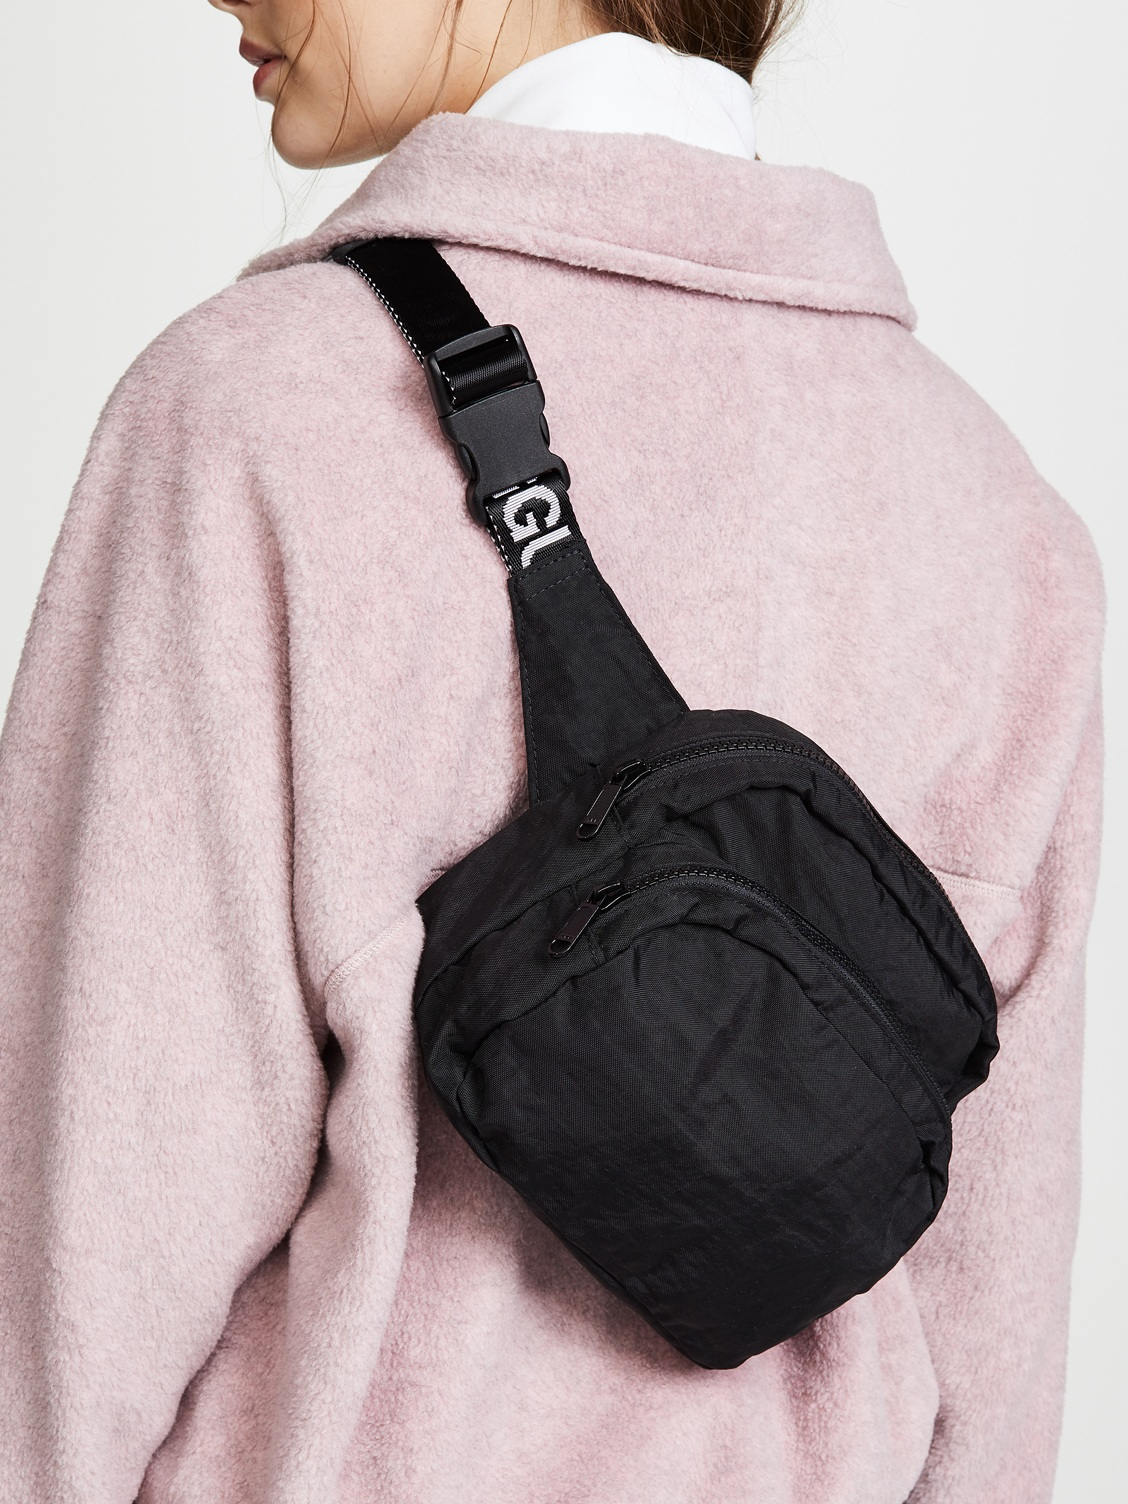 BAGGU / FANNY PACK $48 - available at Shopbop